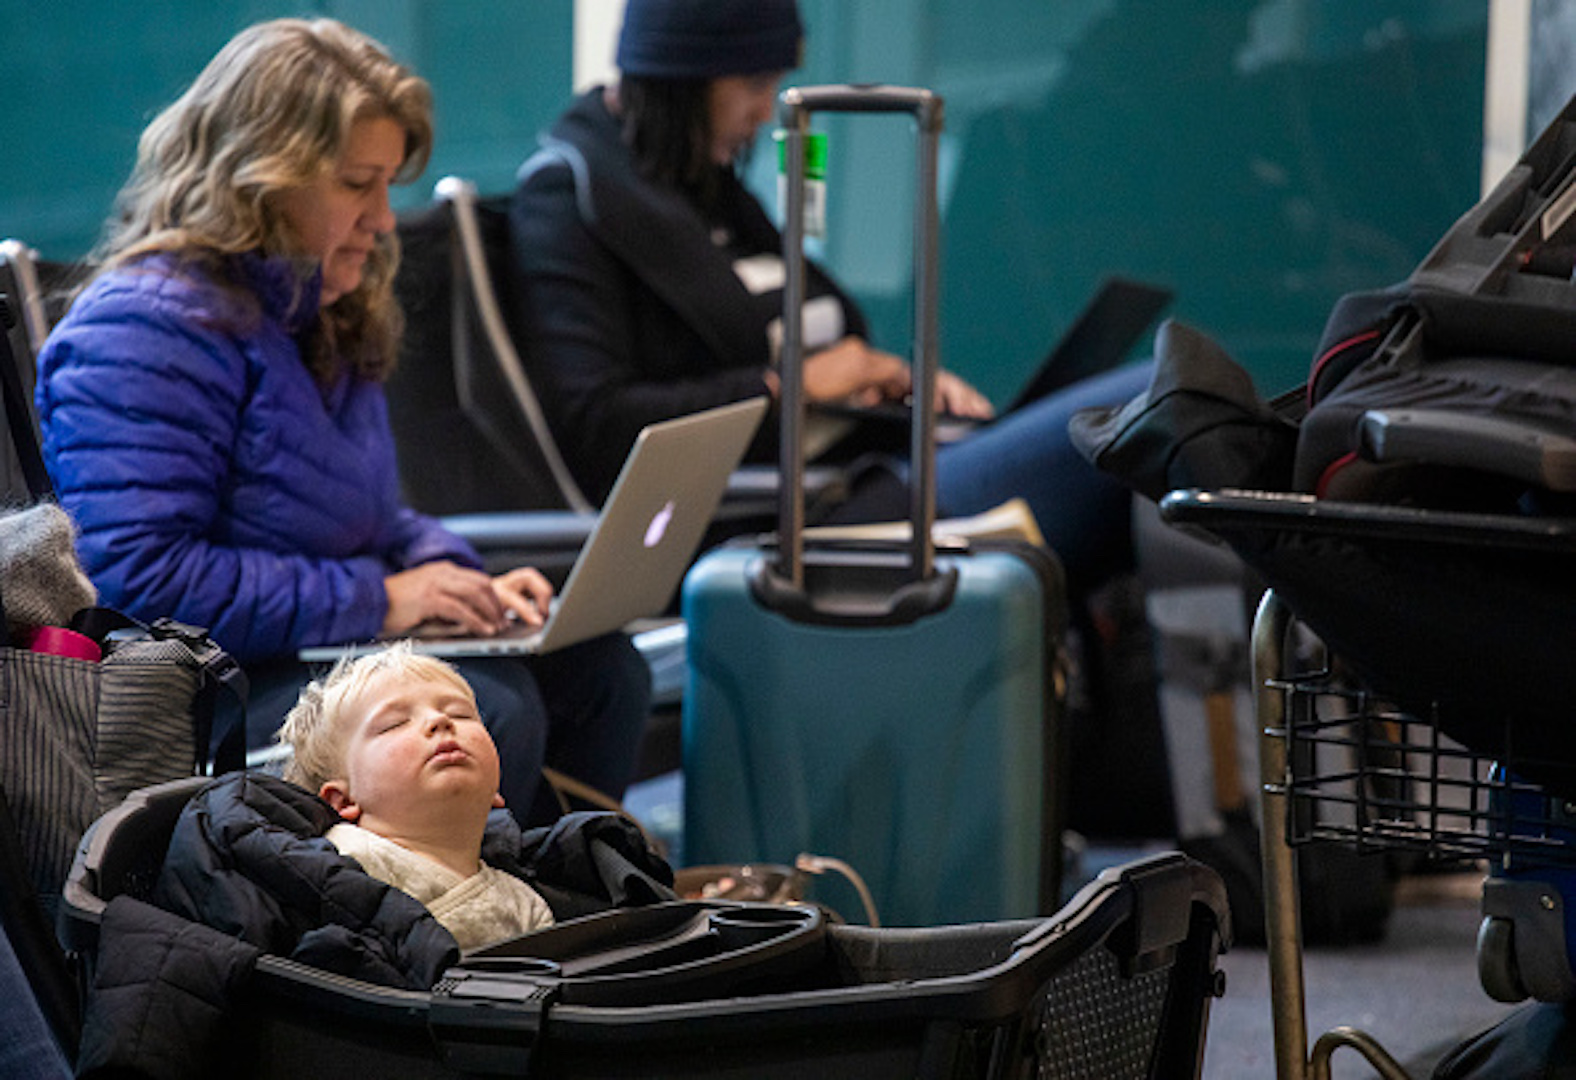 Two-year-old Mile Feiger, of Seattle, naps amid his familys bags and other travelers at Denver